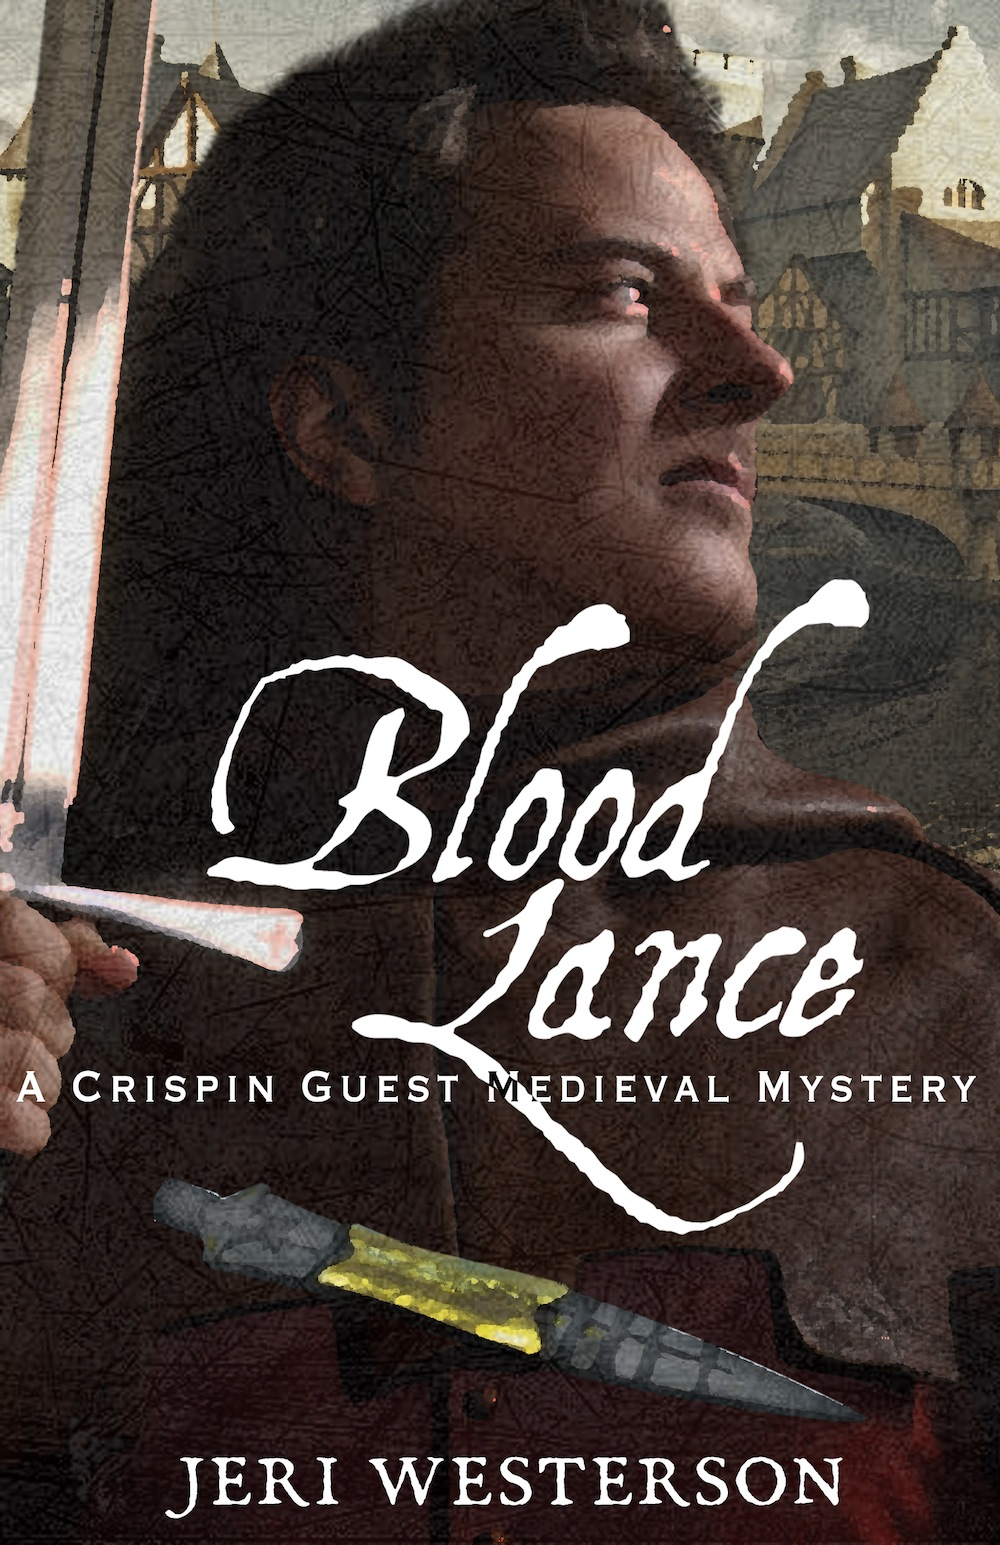 Blood Lance by Jeri Westerson